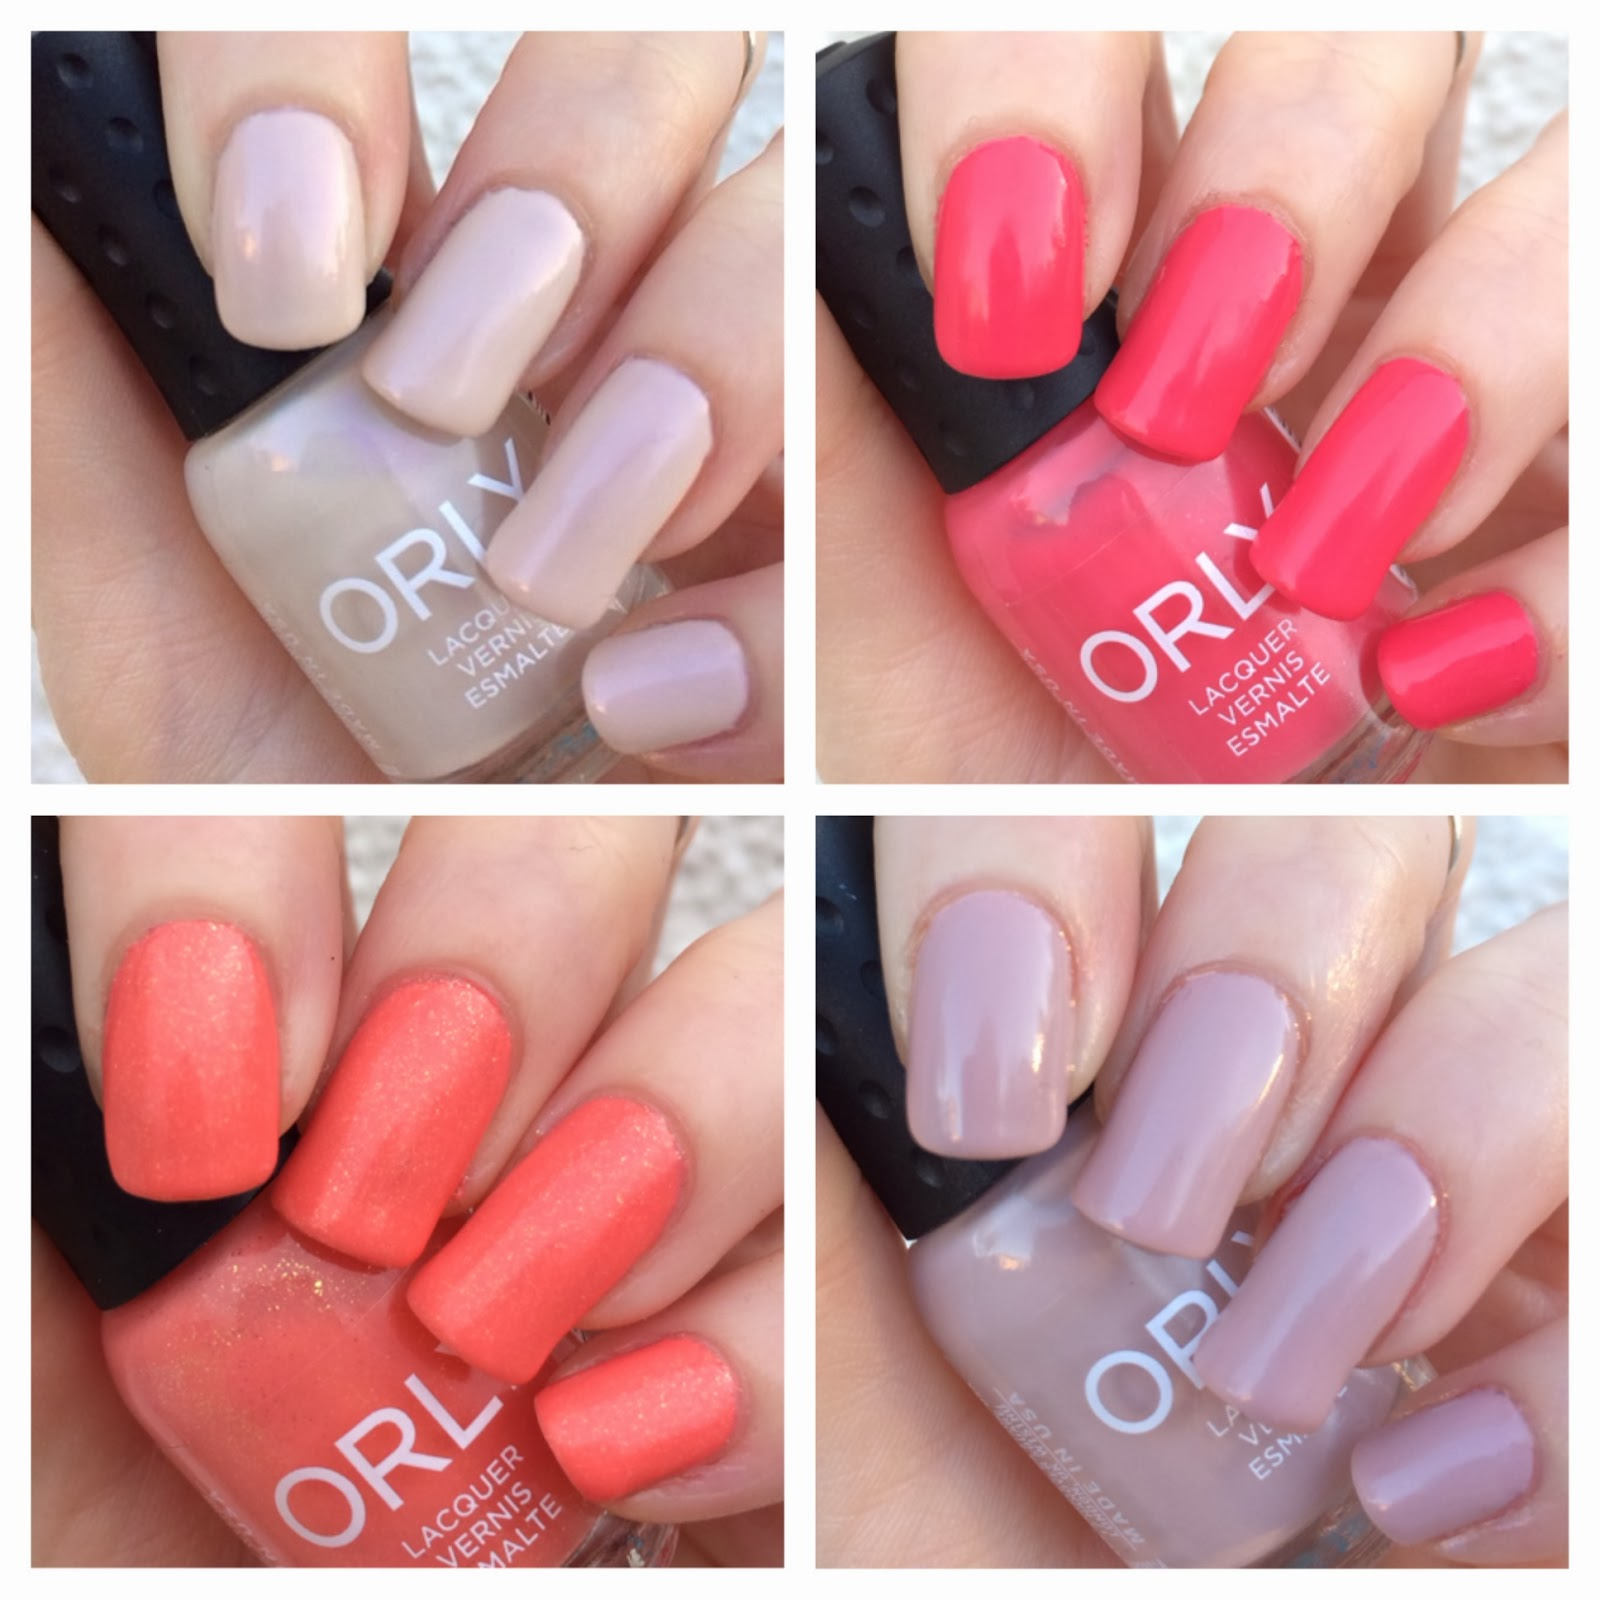 Cat eyes skinny jeans february 2014 orly blush 4pc mini kit review geenschuldenfo Image collections